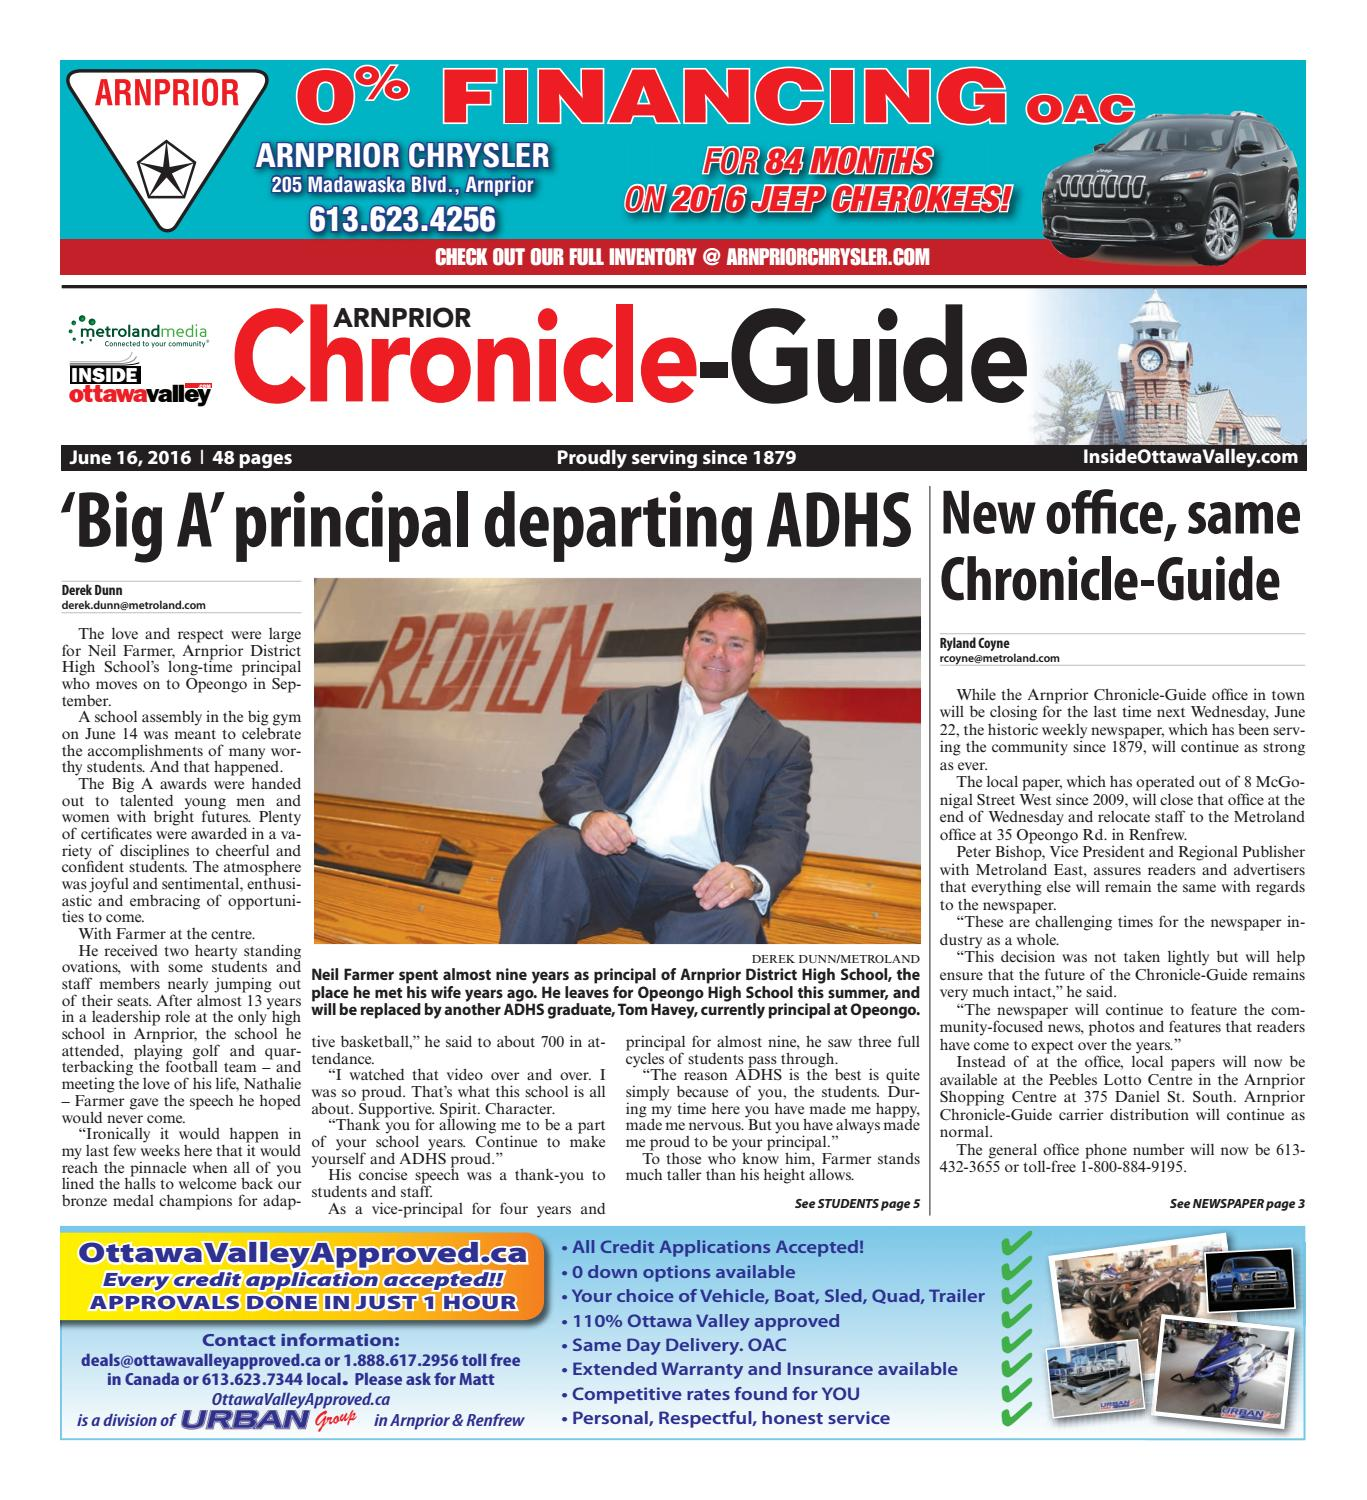 866e1f1aa4 Arnprior061616 by Metroland East - Arnprior Chronicle-Guide - issuu